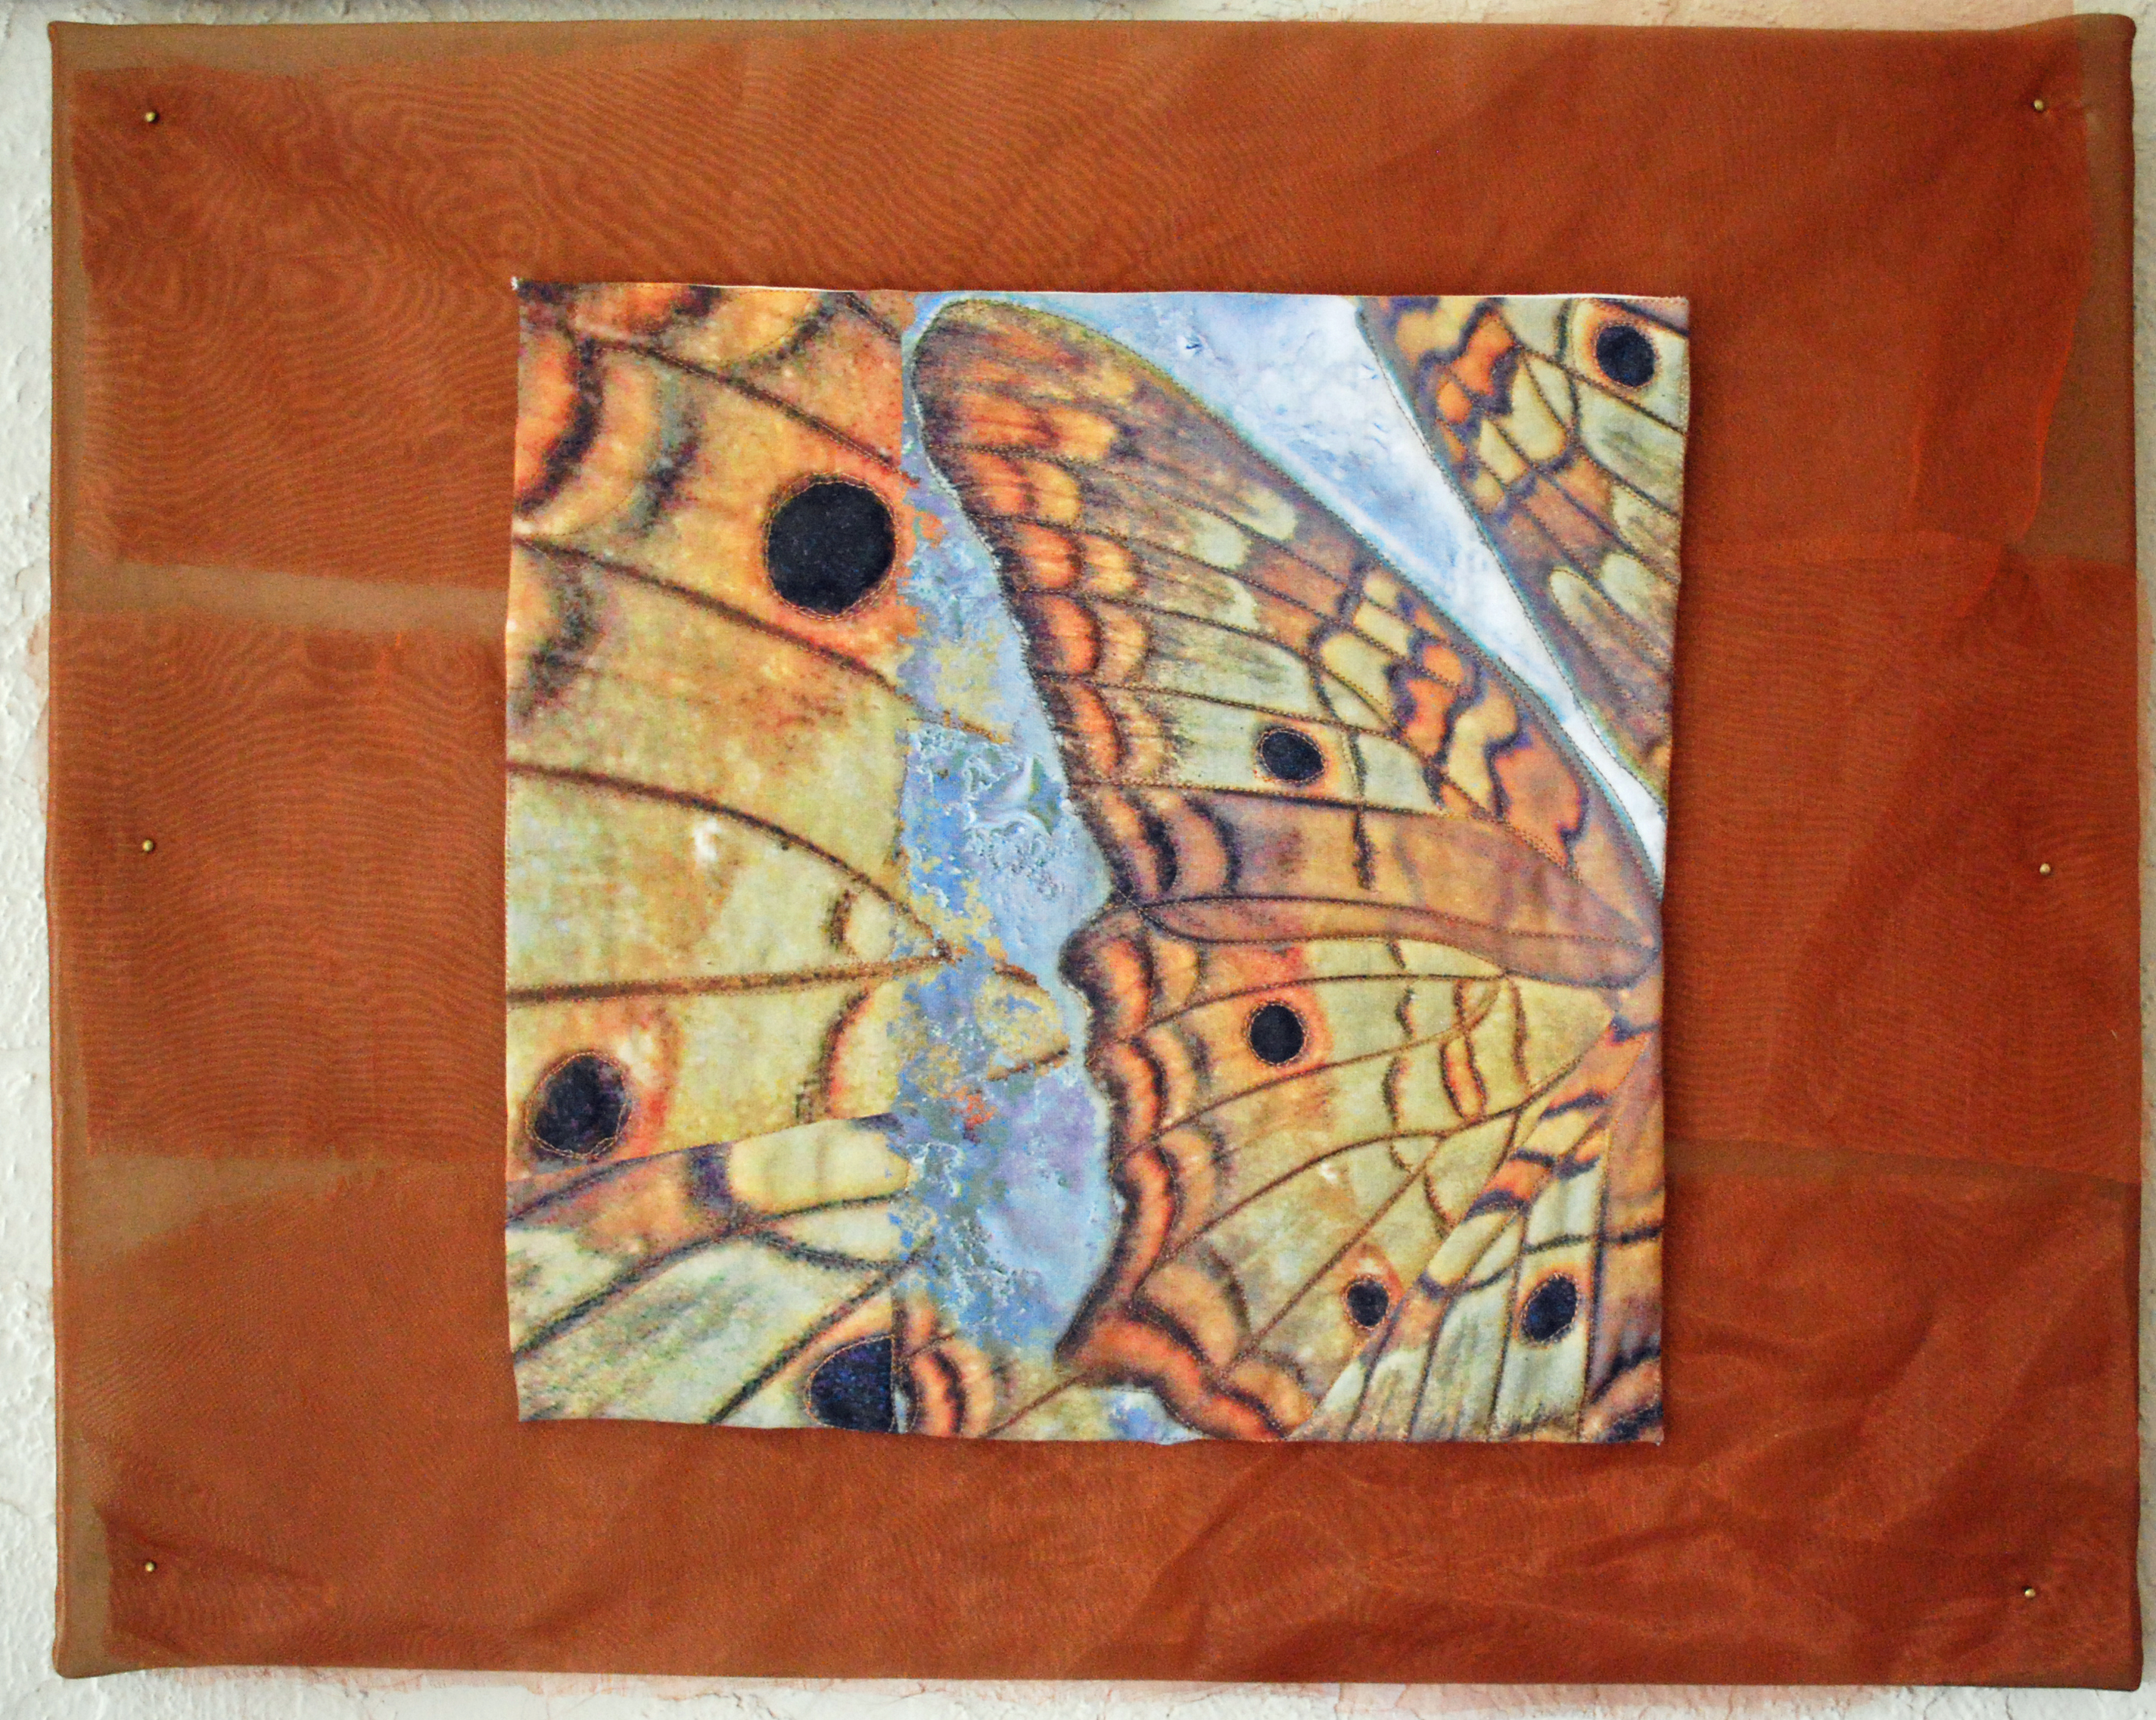 Gallery: butterfly art hanging